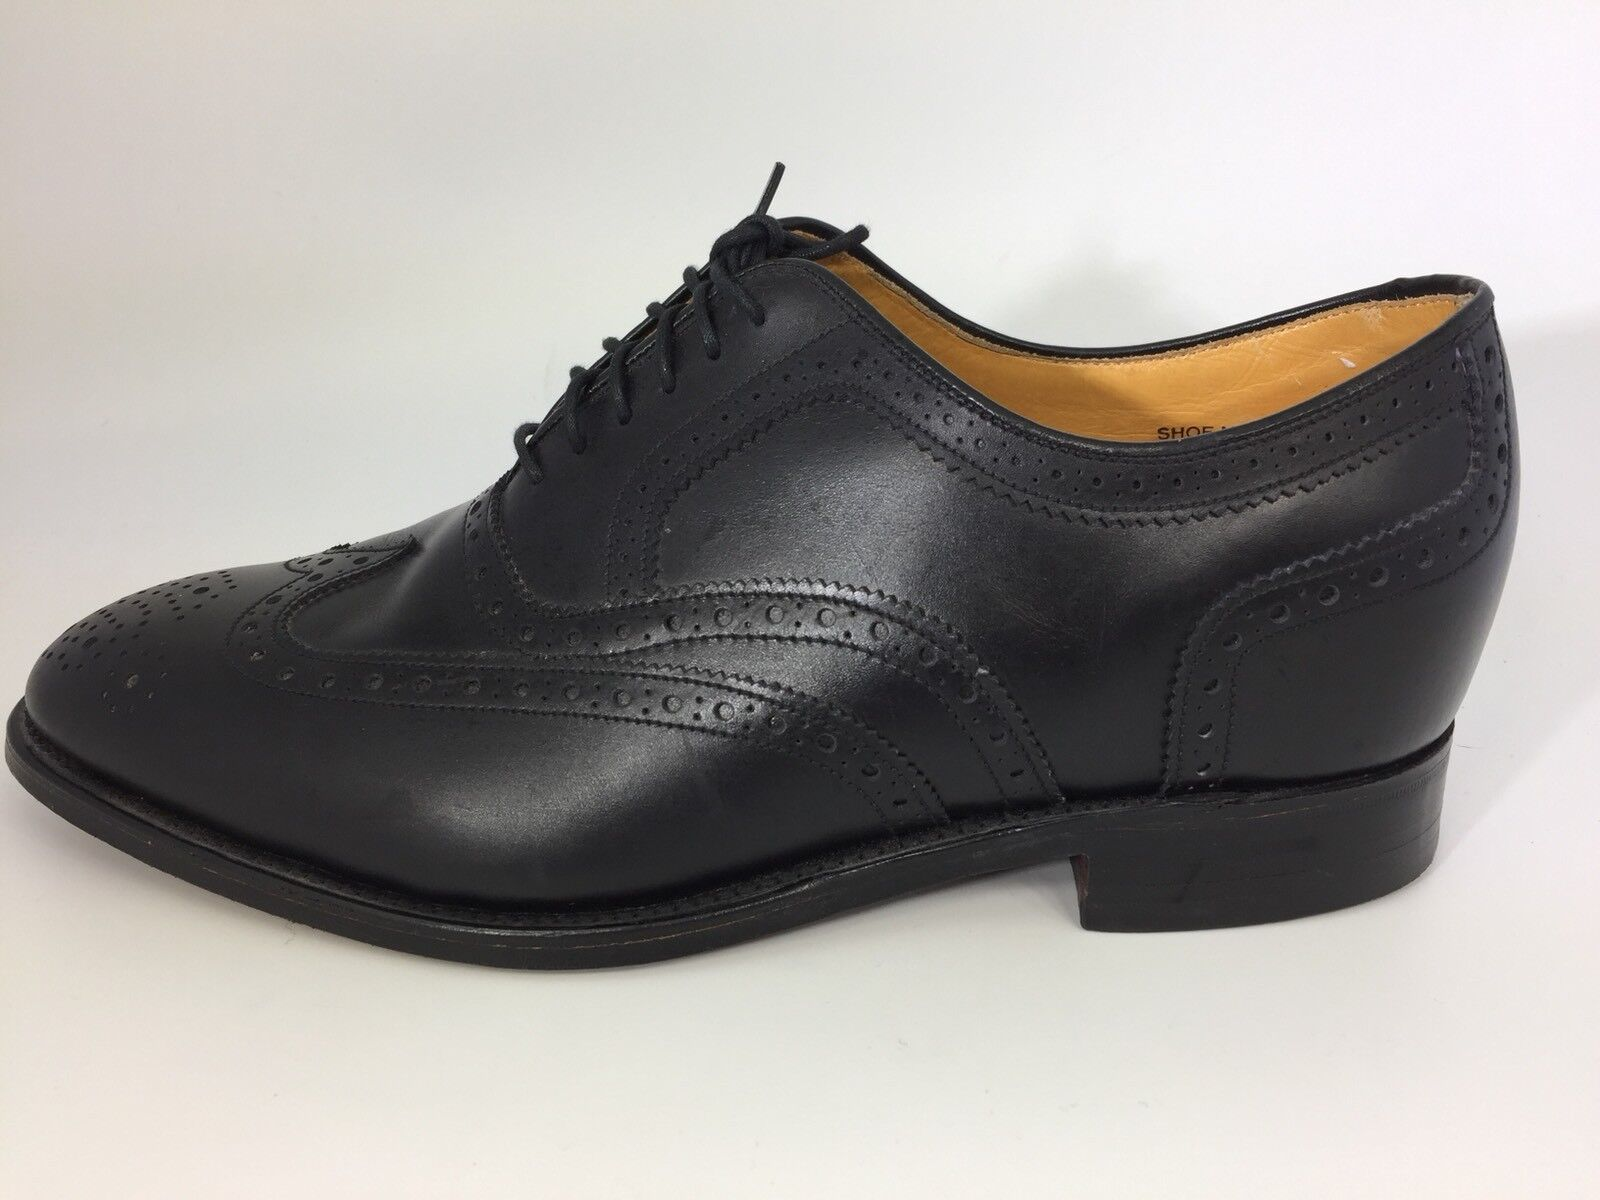 Made in England Lift Black Wingtip Oxfords shoes Mens Size 11.5 EE